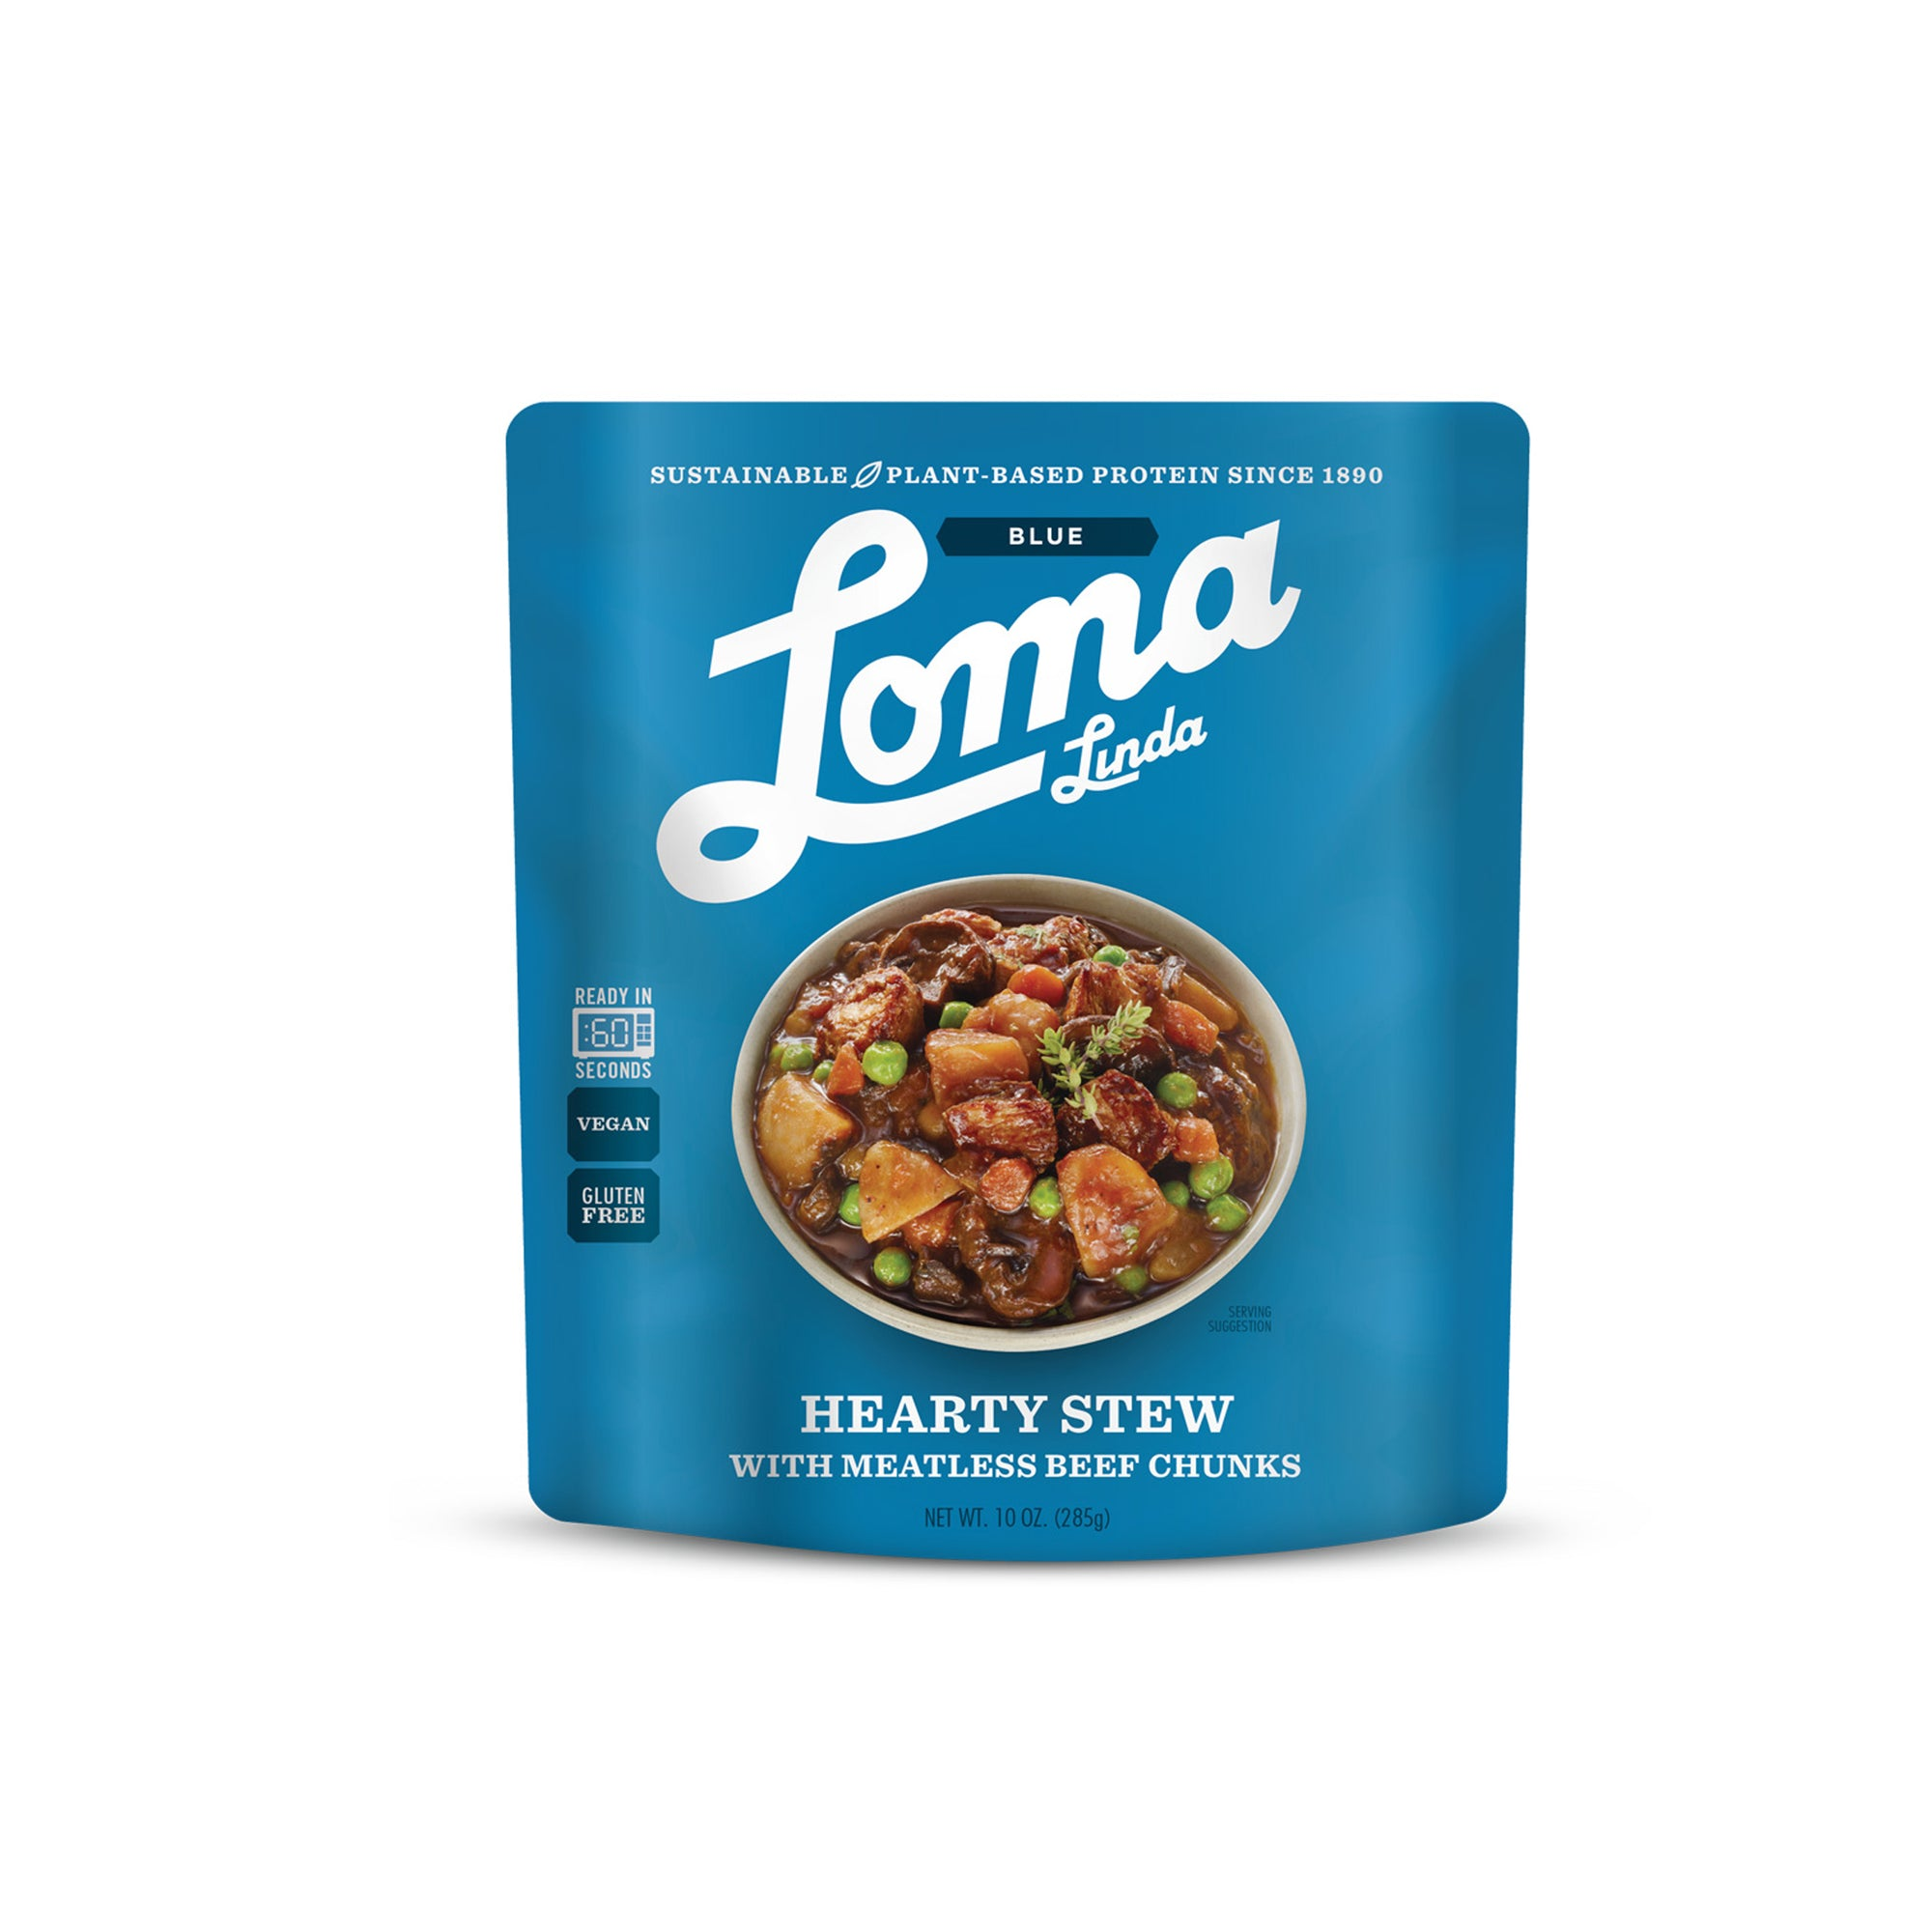 Loma Linda - Hearty Stew 285g